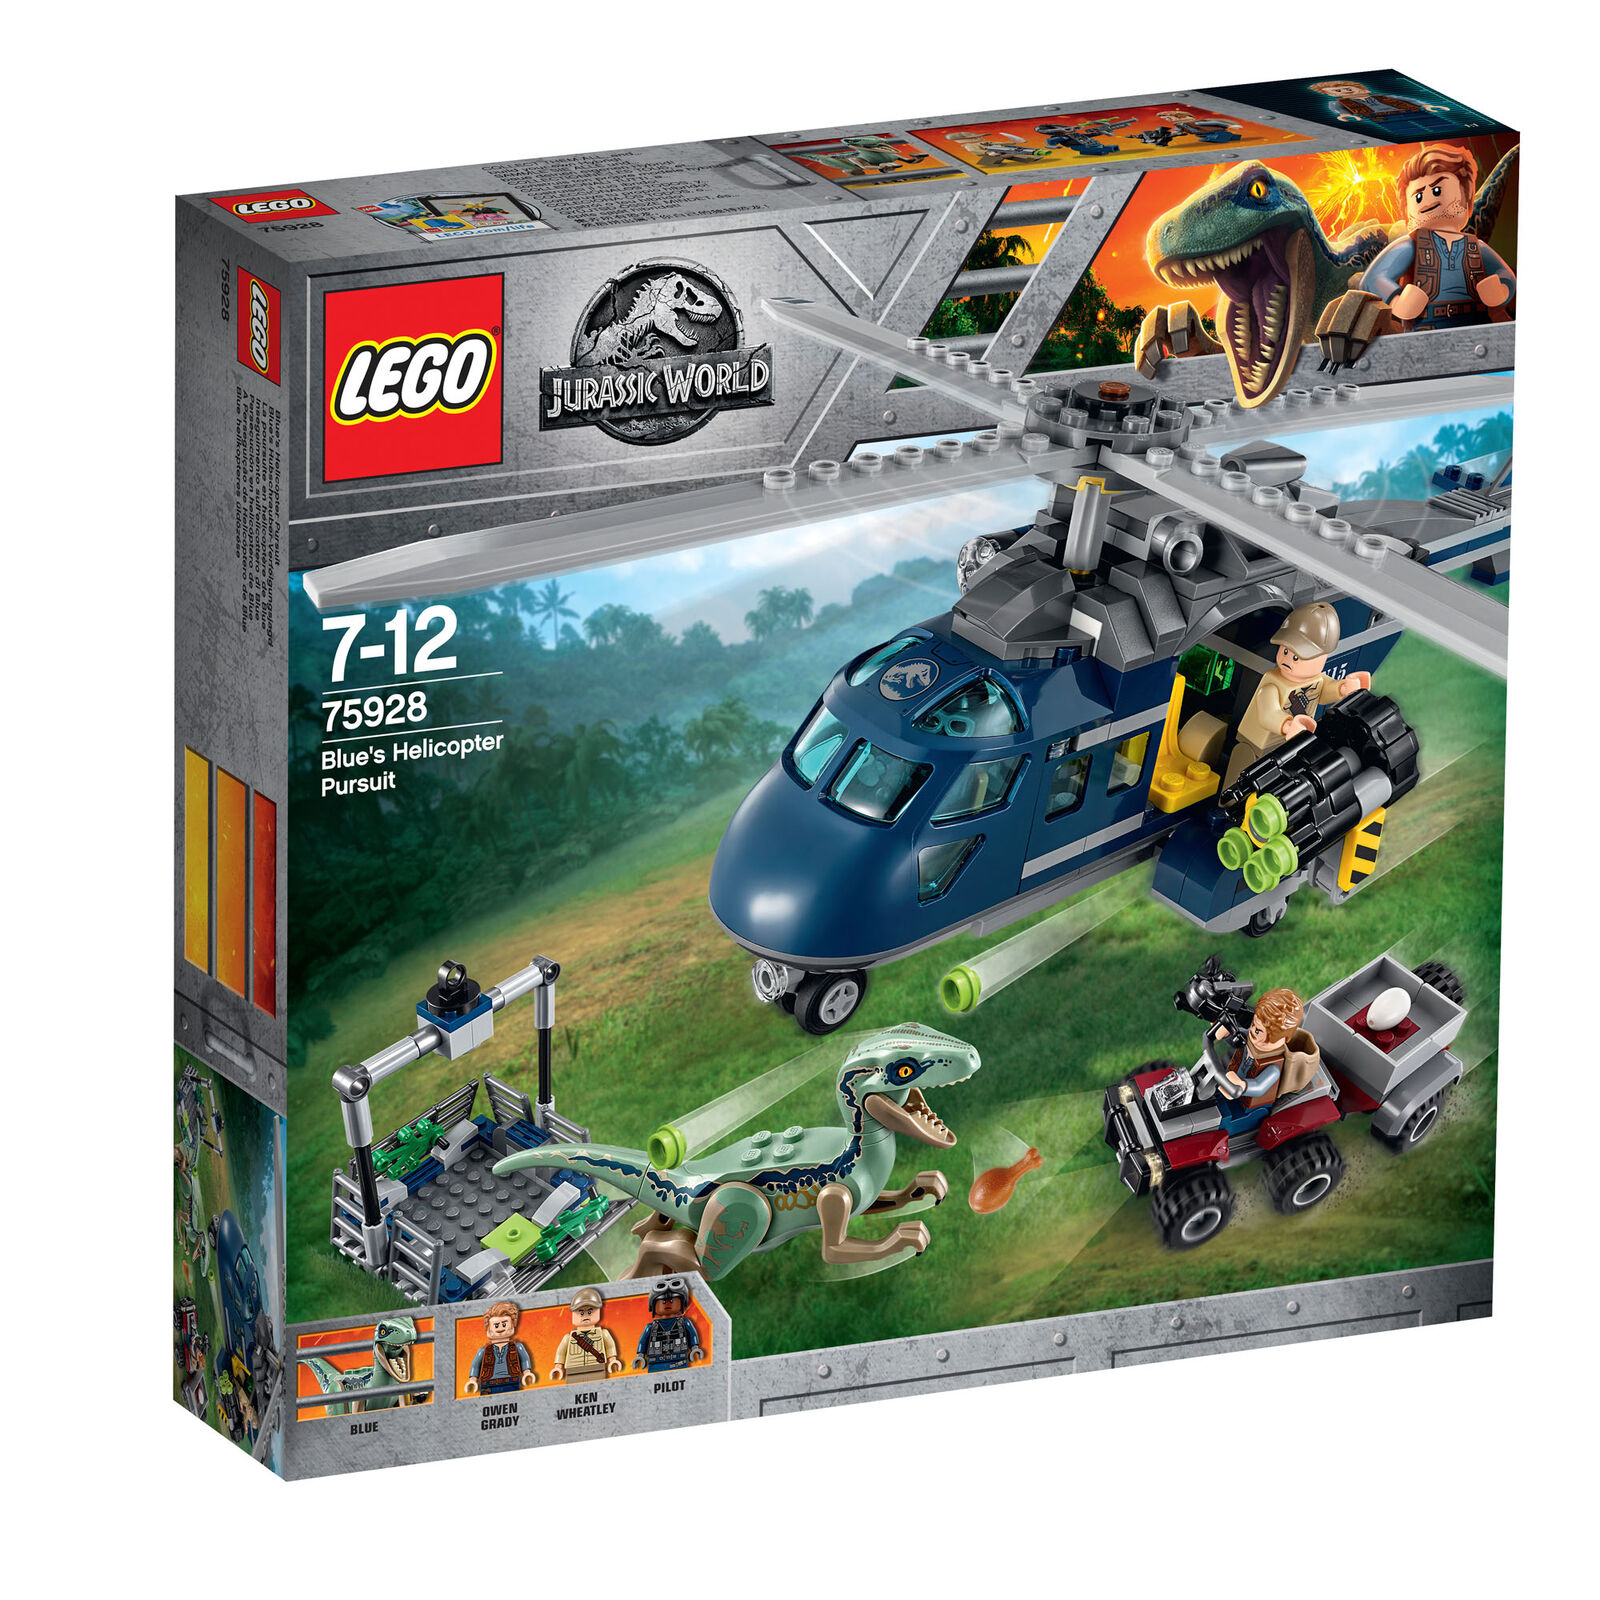 75928 LEGO LEGO LEGO Jurassic World bluee'S Helicopter Pursuit 397 Pieces Age 7+ New 2018  a03824